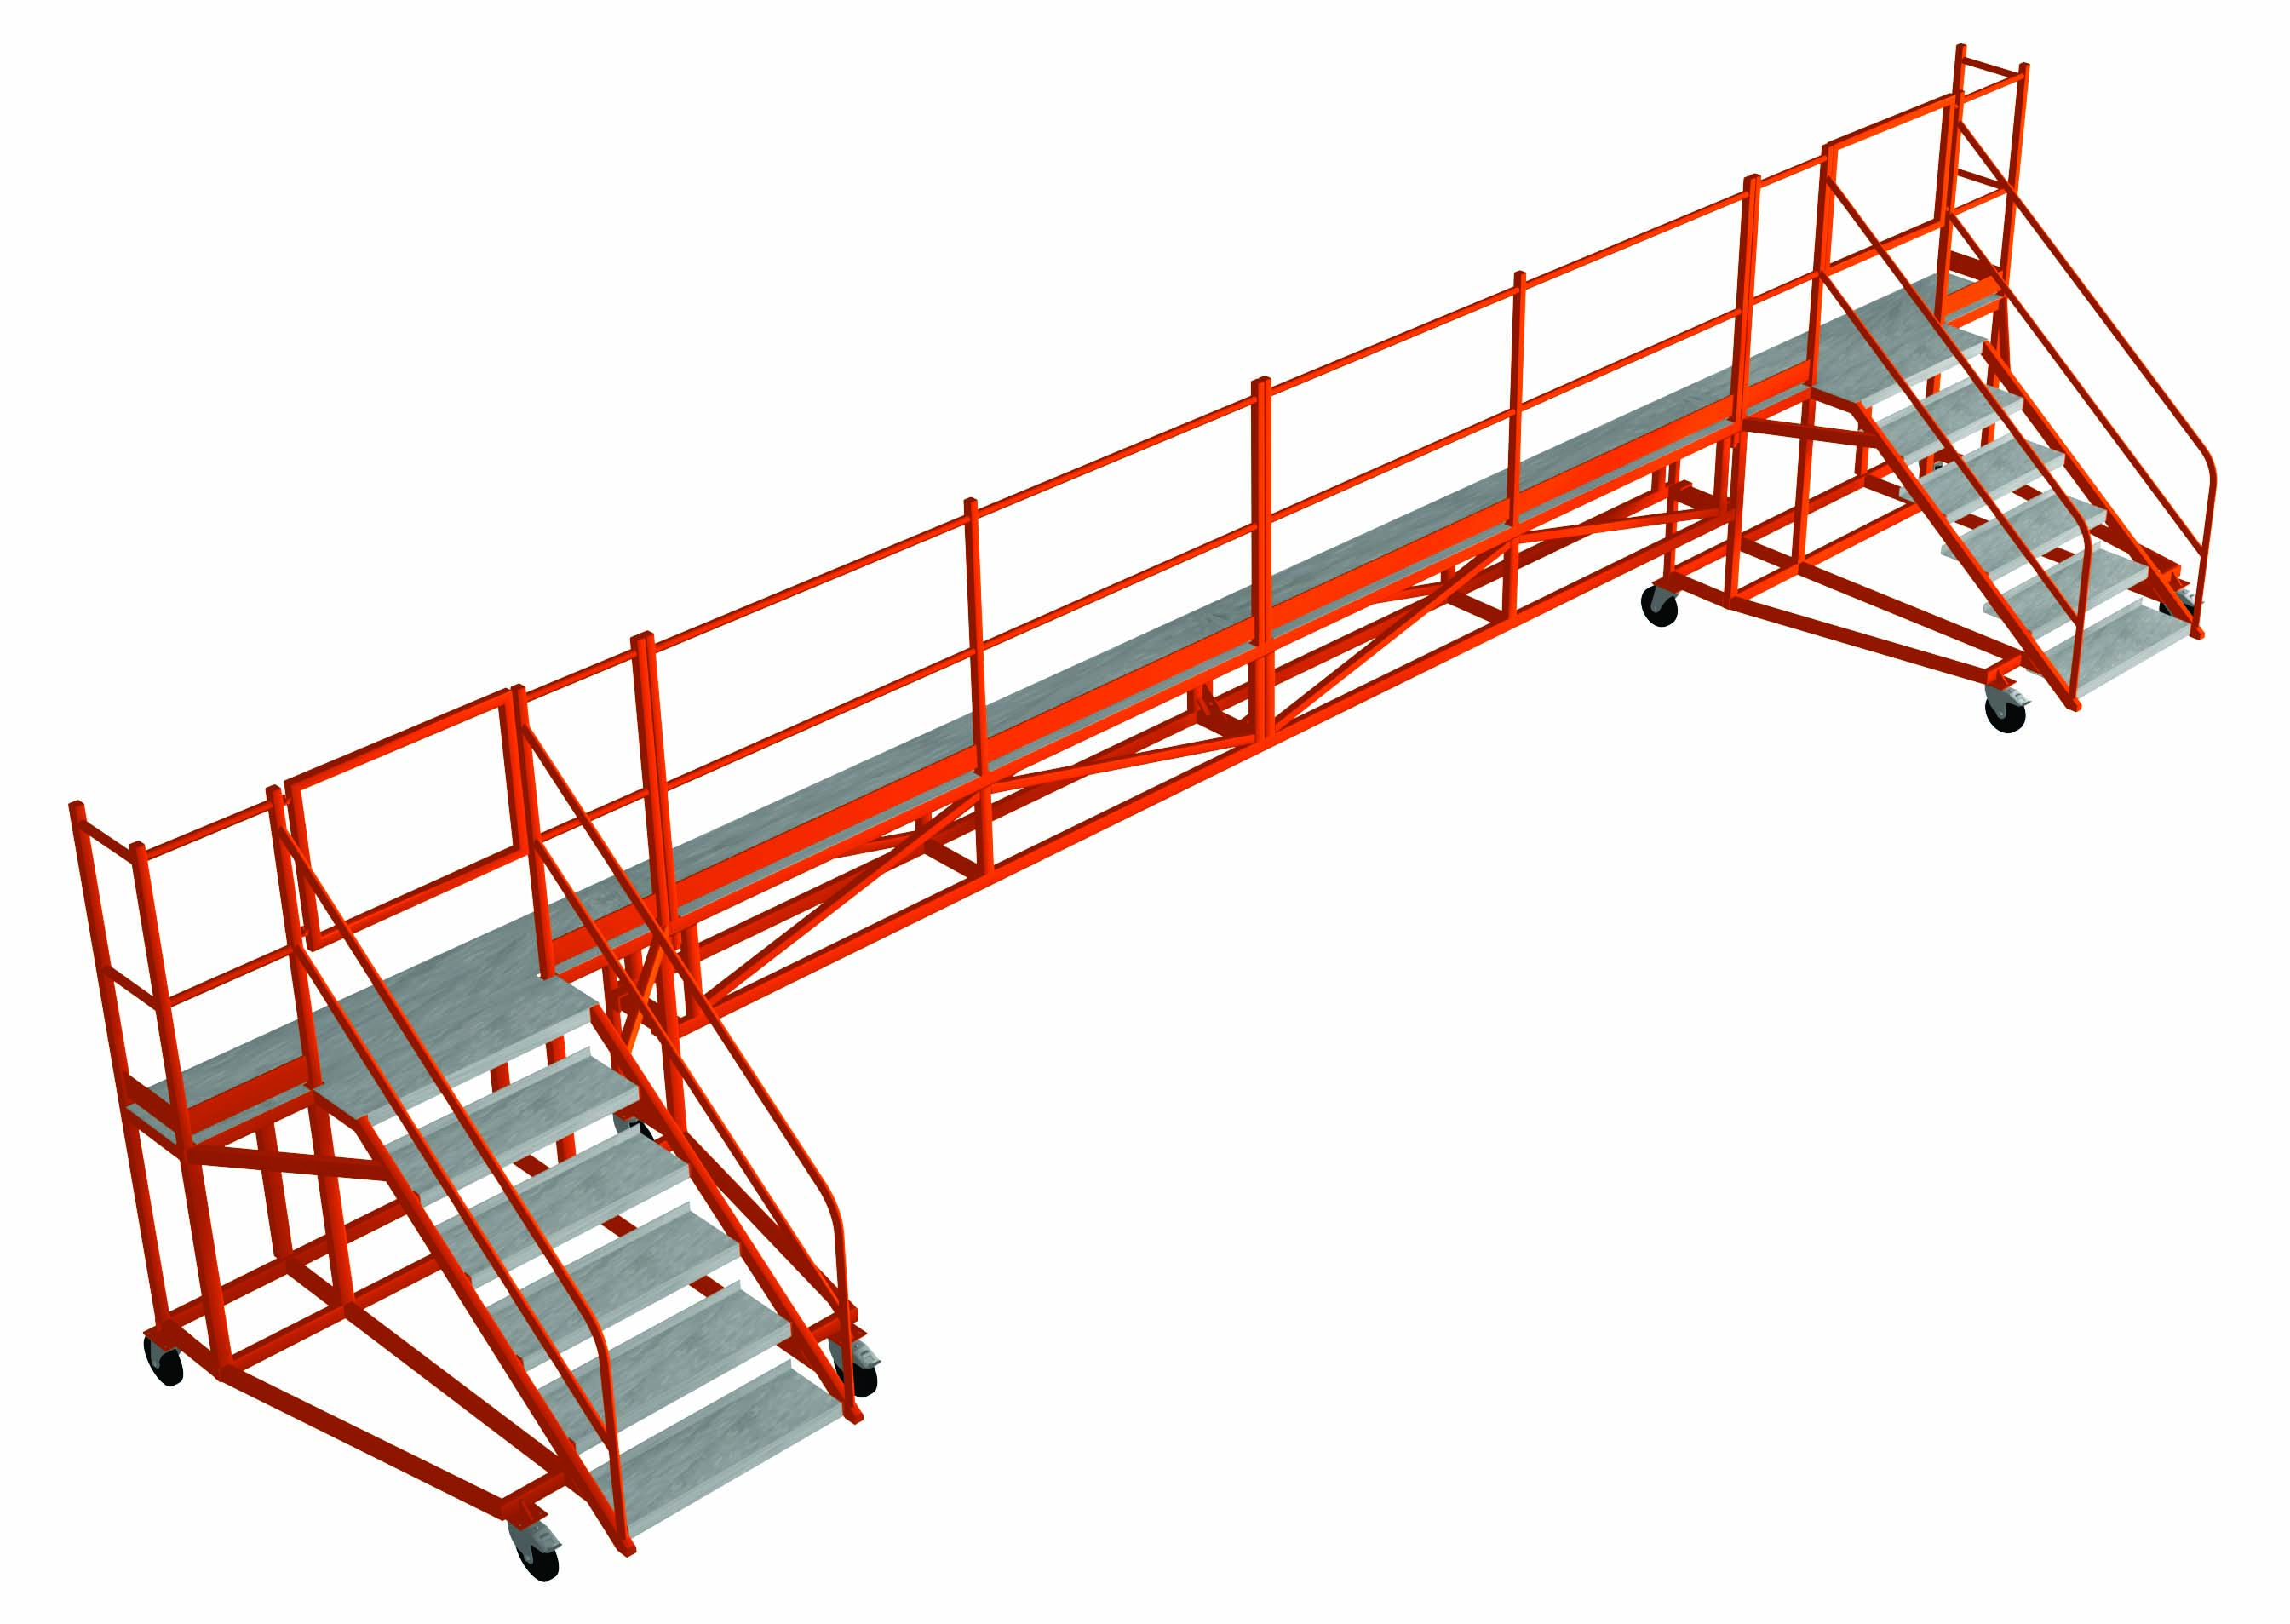 steel-stockists-sections-and-flats-unloading-11m-platform